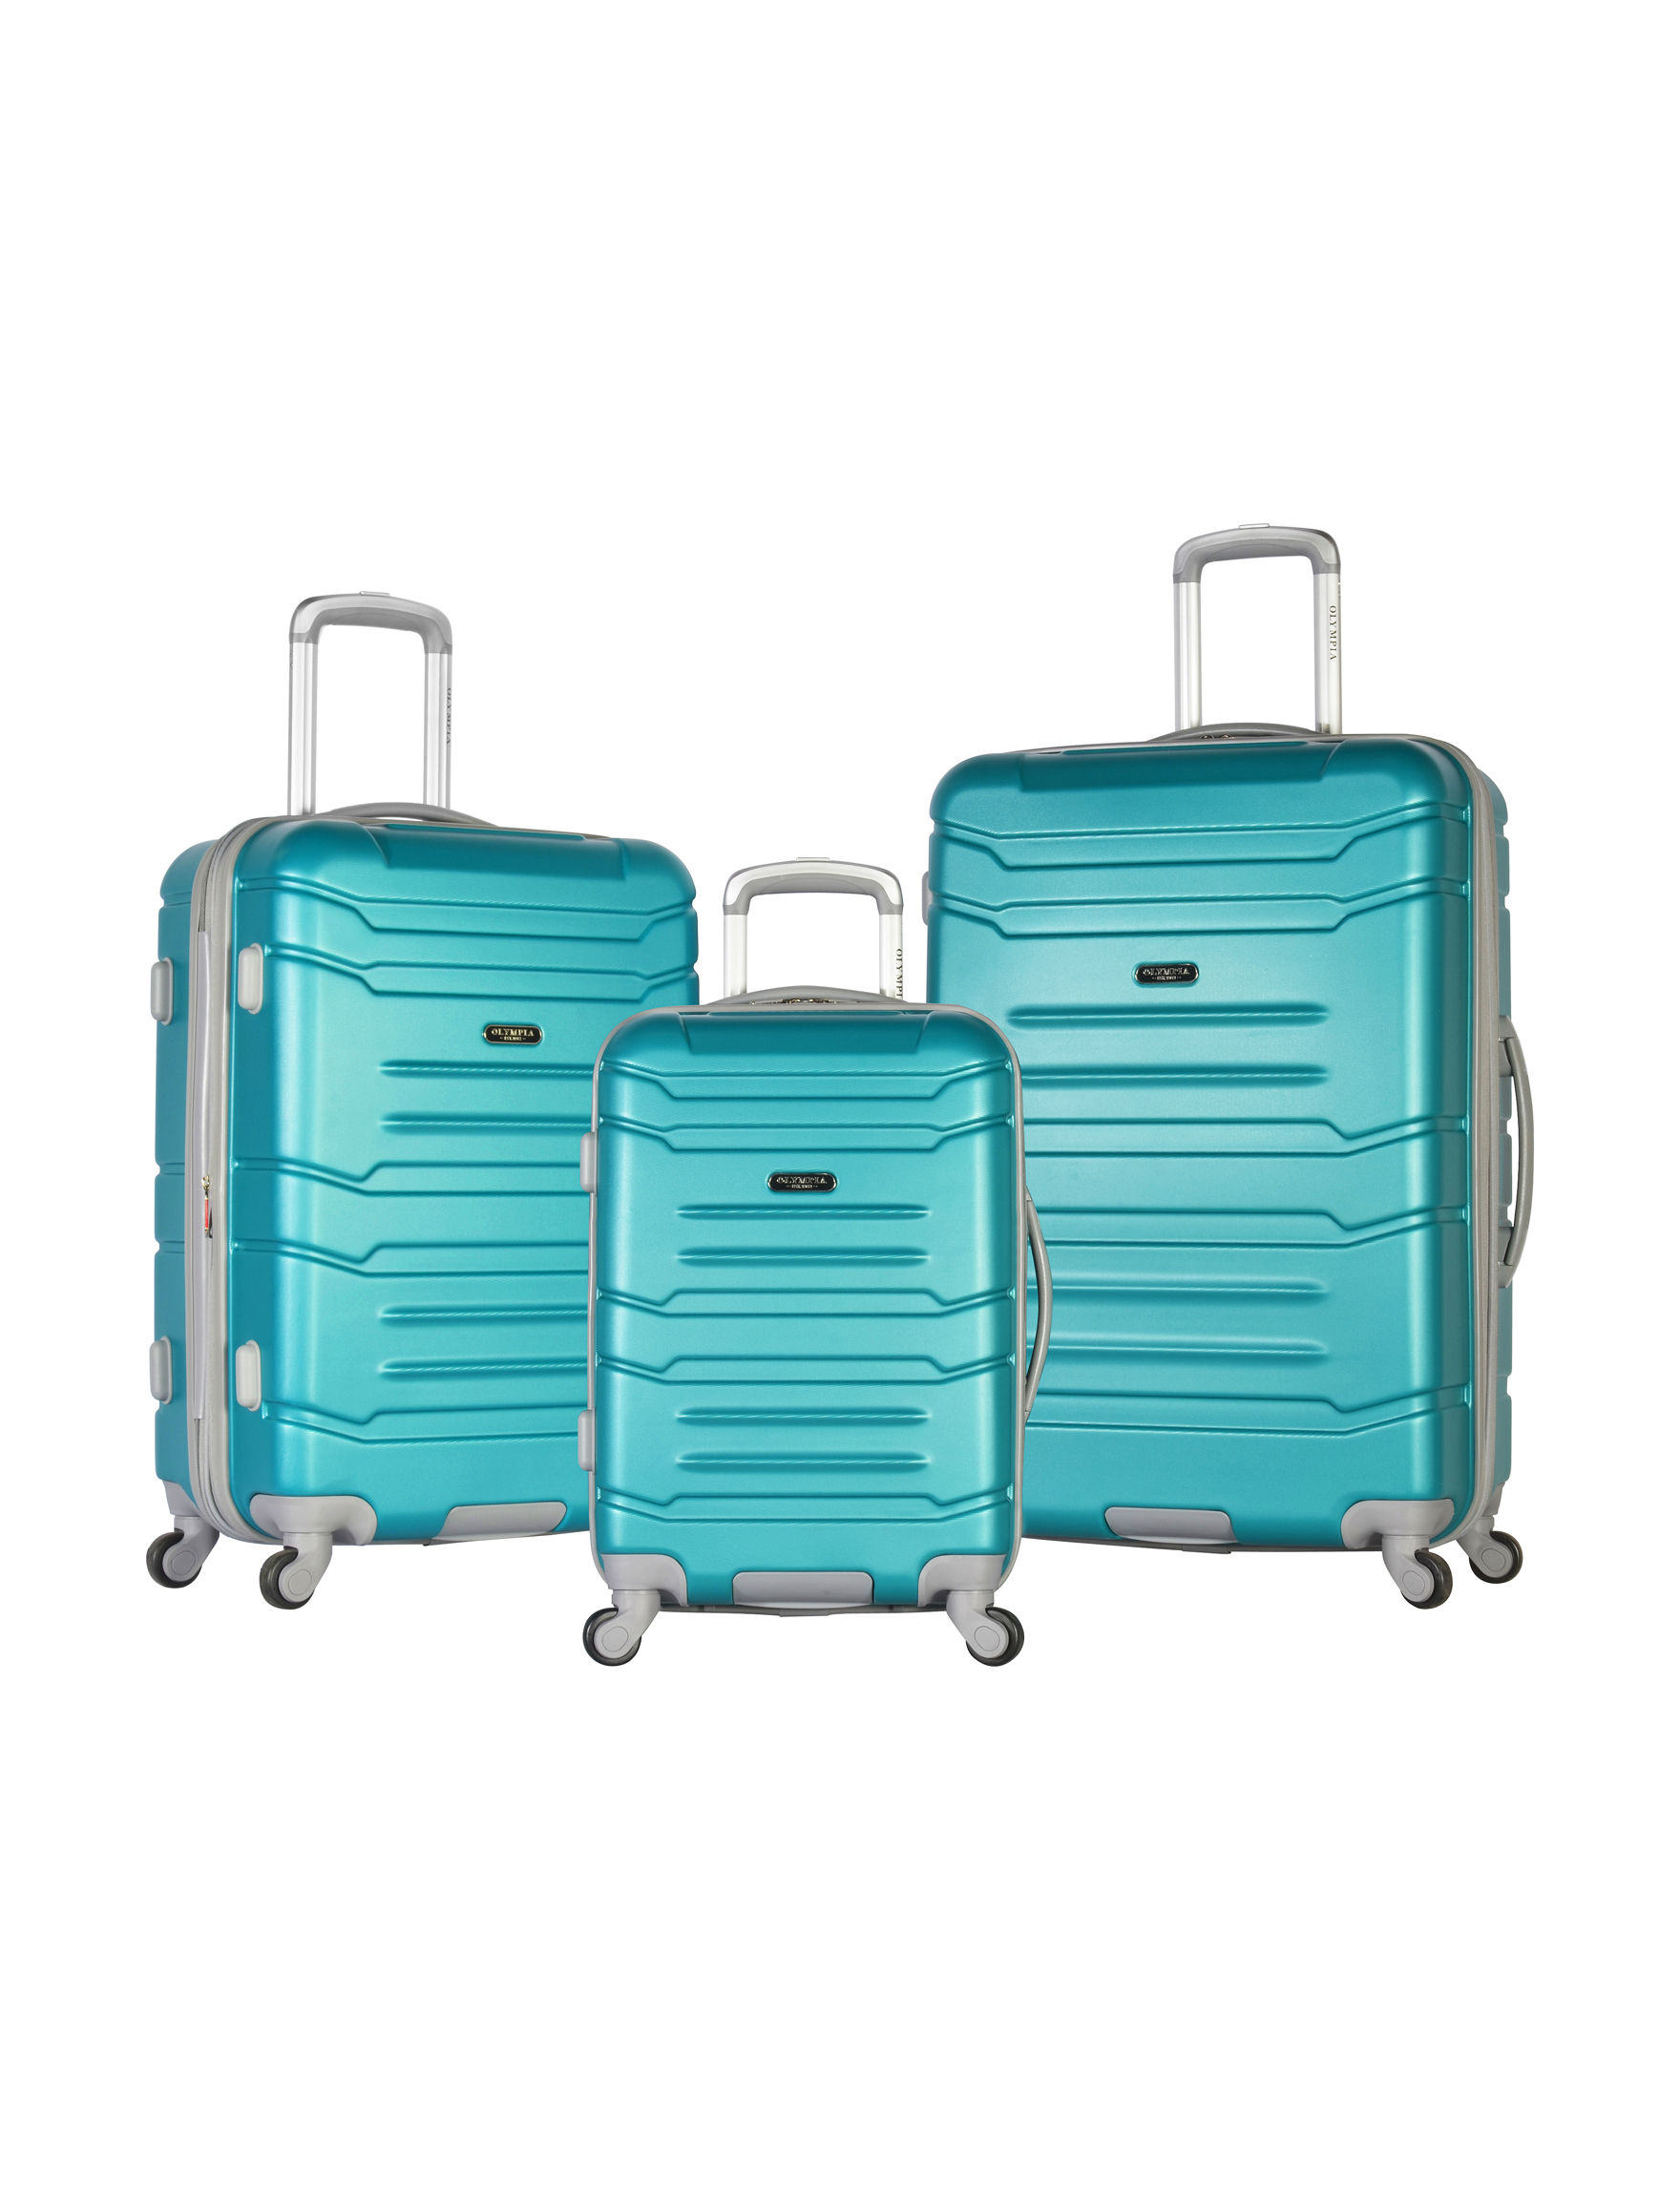 Olympia Turquoise Hardside Upright Spinners